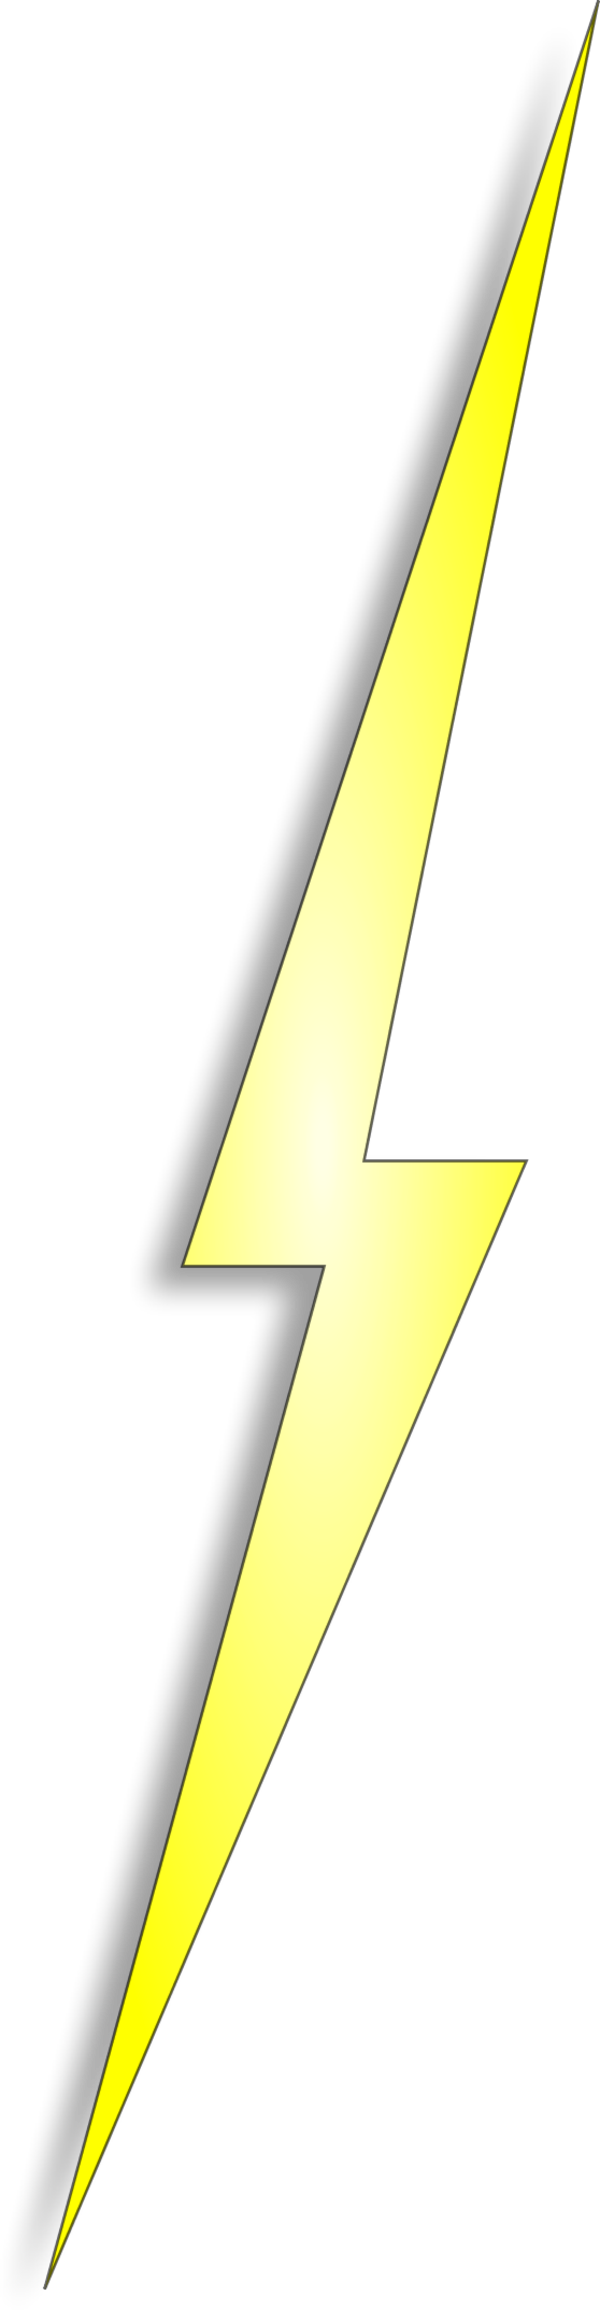 Free Lightning Vector Png, Download Free Clip Art, Free Clip.